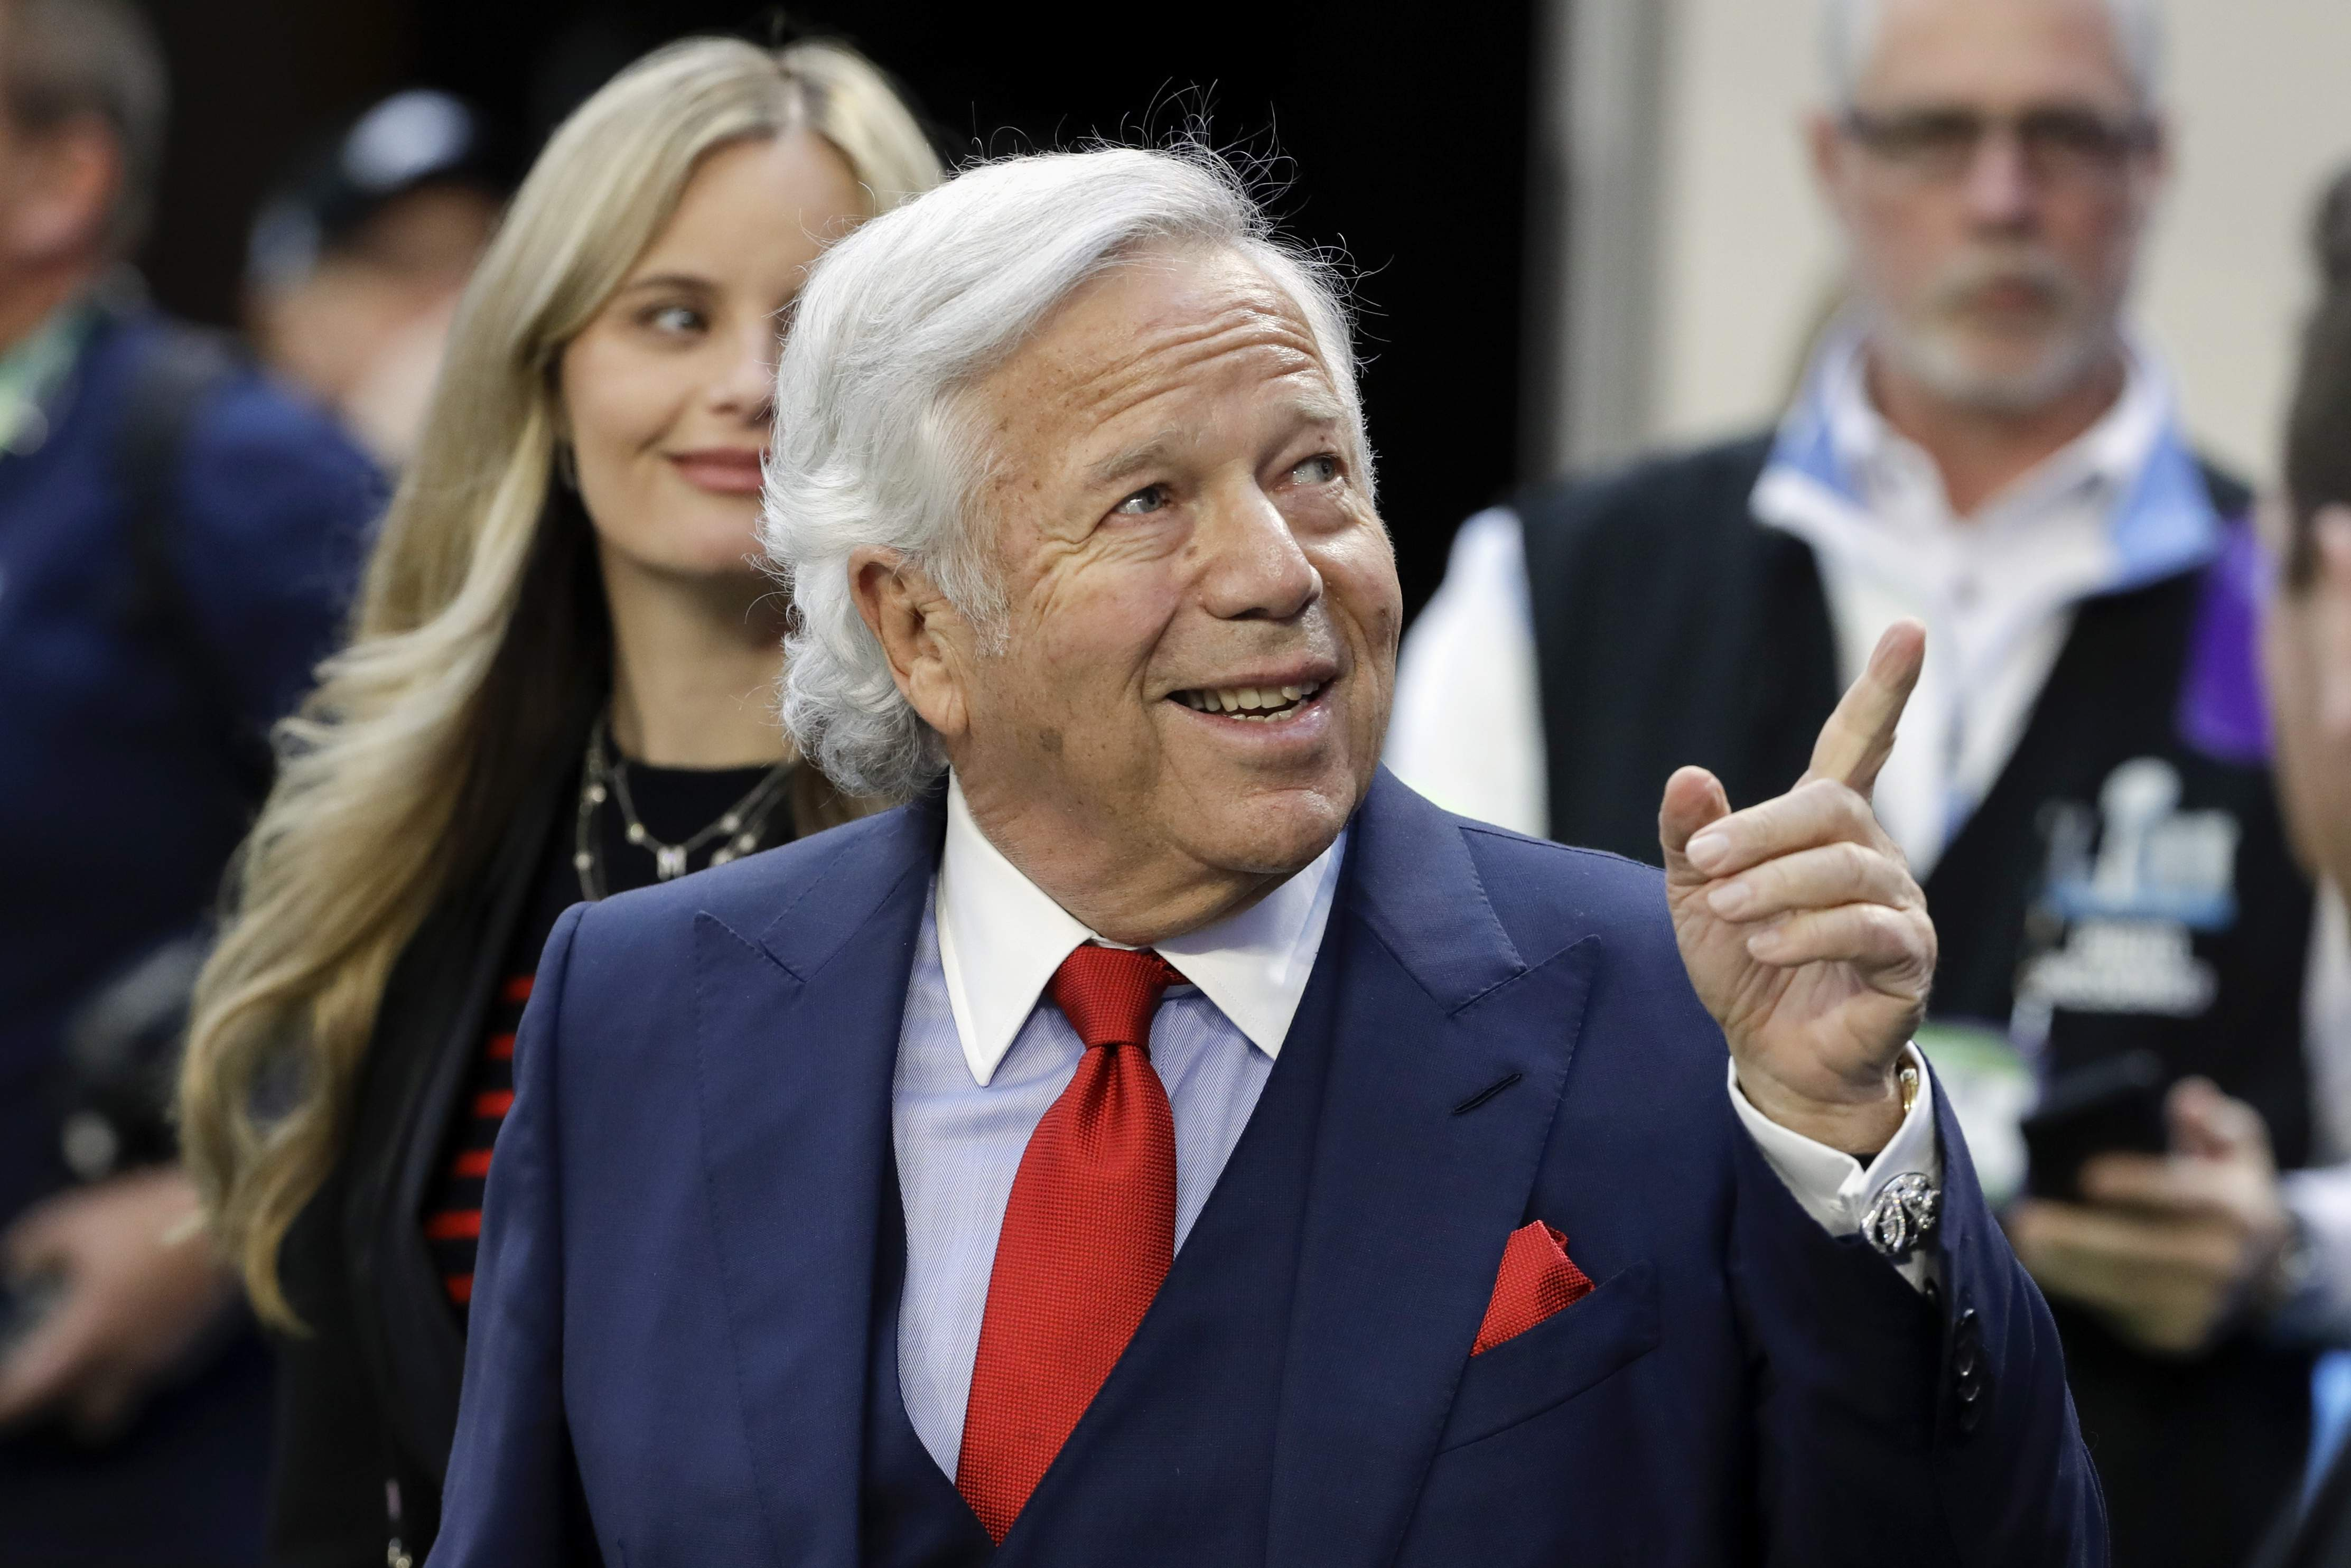 New England Patriots owner Robert Kraft, arrives at U.S. Bank Stadium before the NFL Super Bowl 52 football game against the Philadelphia Eagles, Sunday, Feb. 4, 2018, in Minneapolis. (AP Photo/Chris O'Meara)